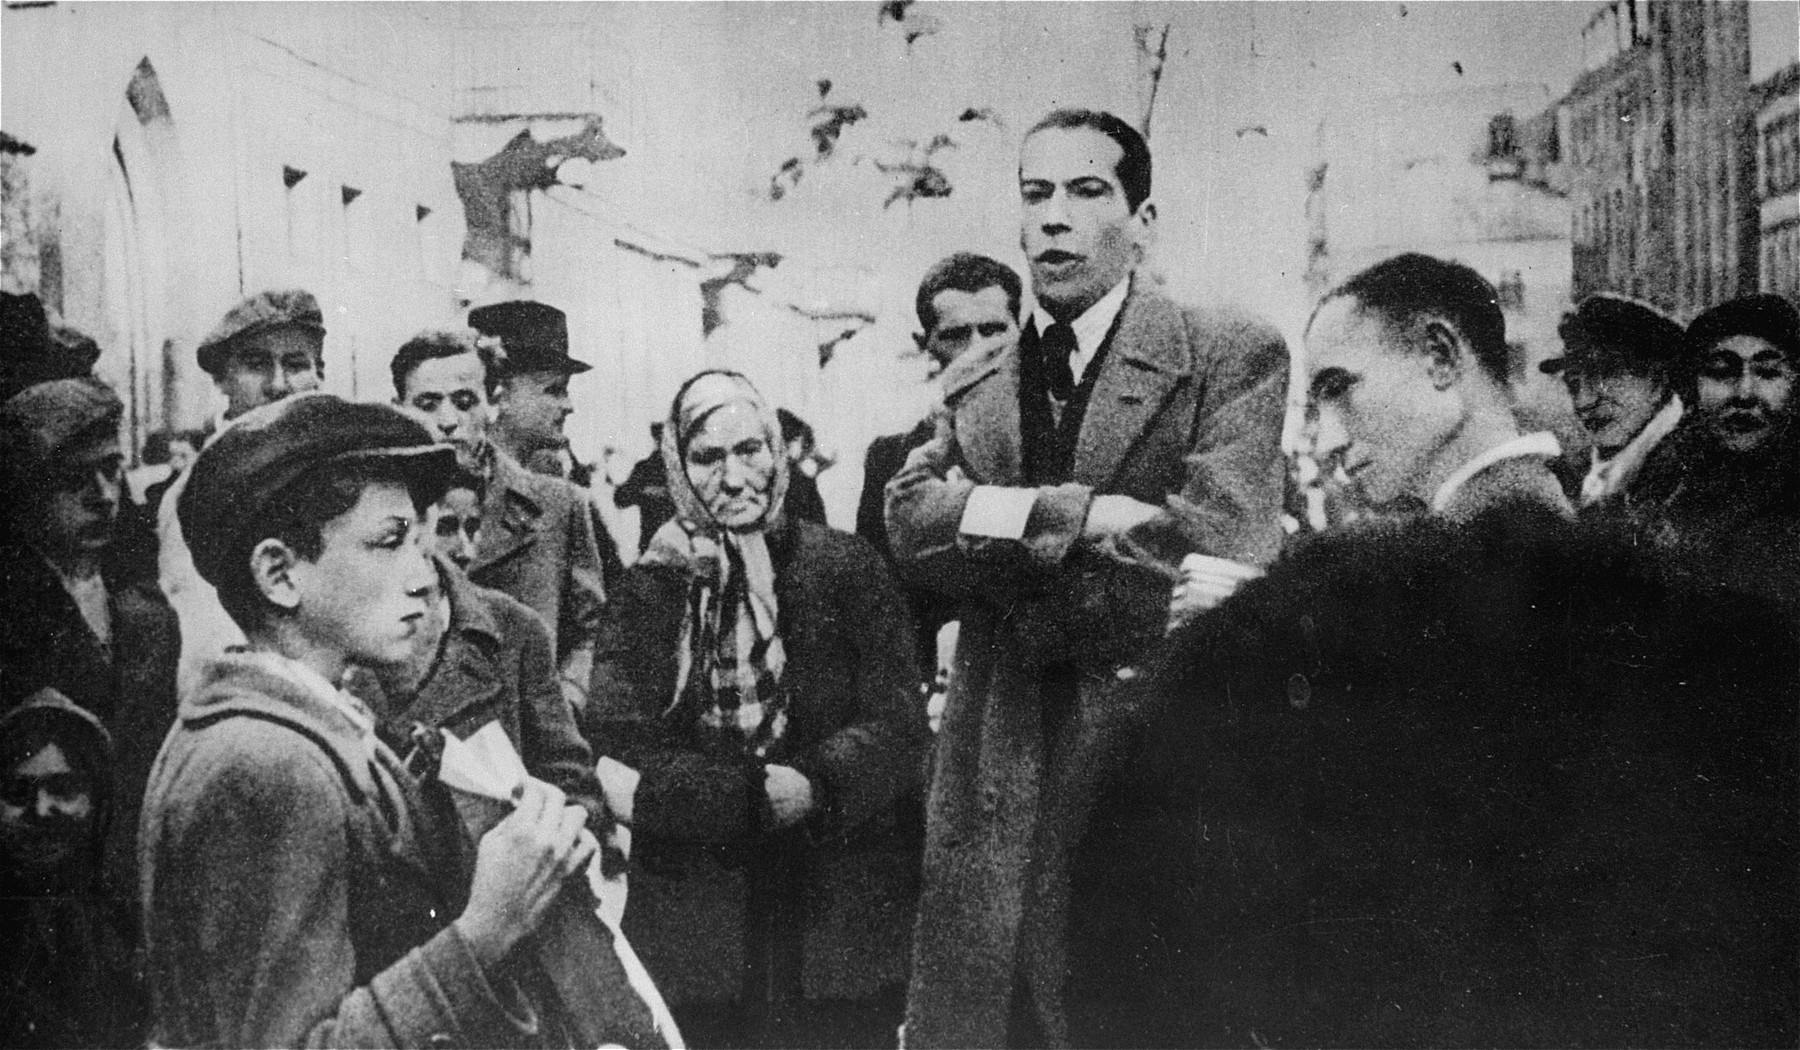 The famous opera singer, Dotlinger, performs on the street in the Warsaw ghetto.